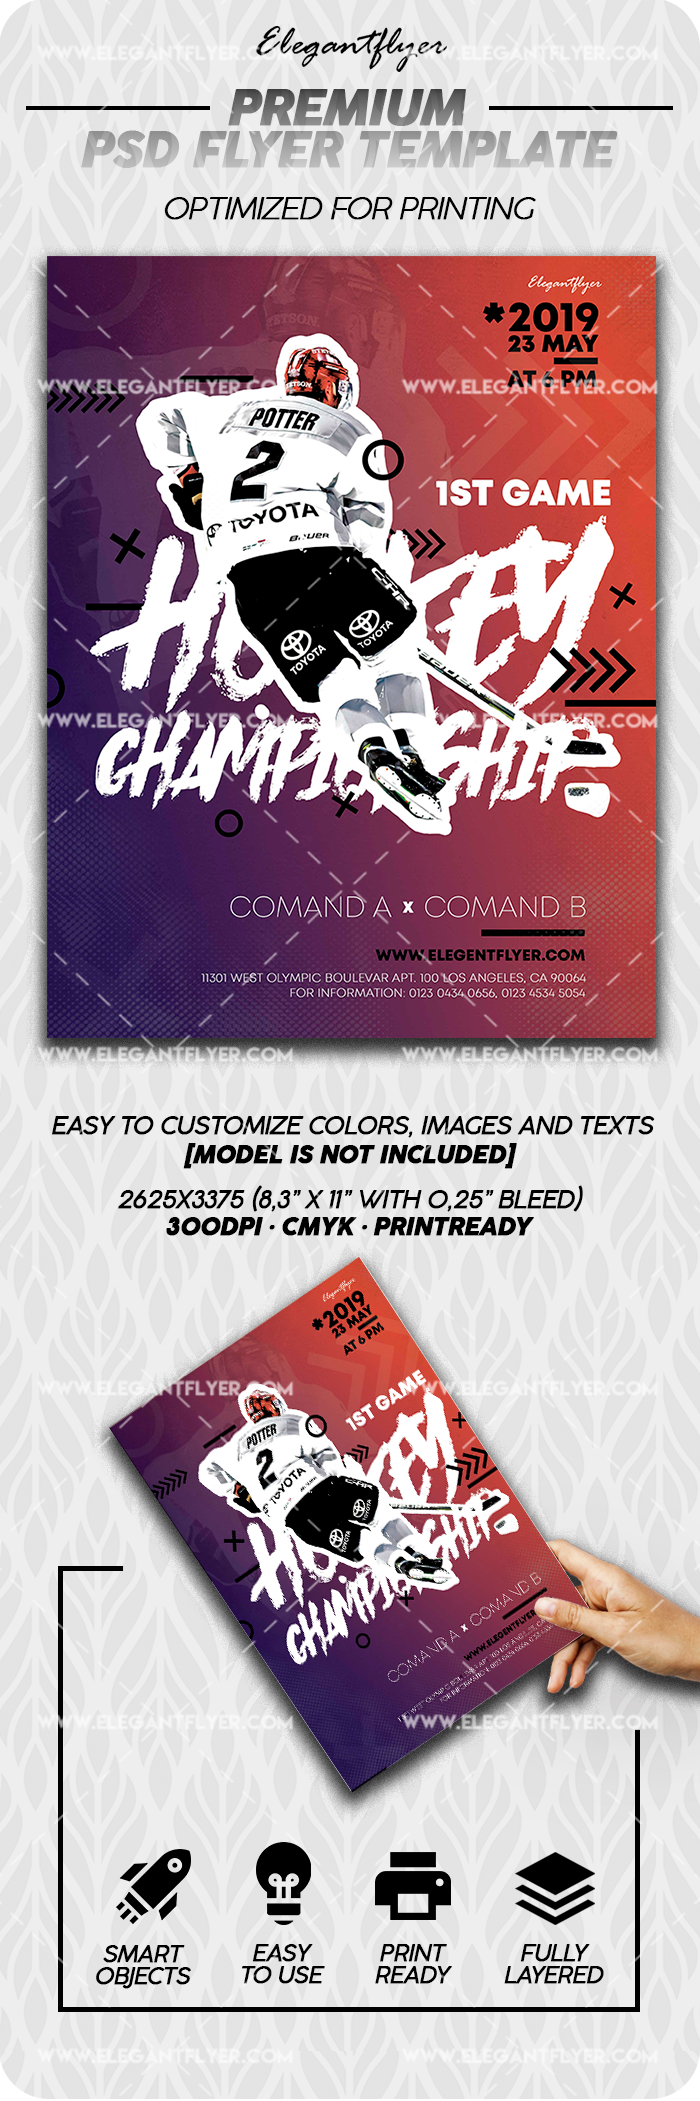 Ice Hockey World Championships – PSD Flyer Template